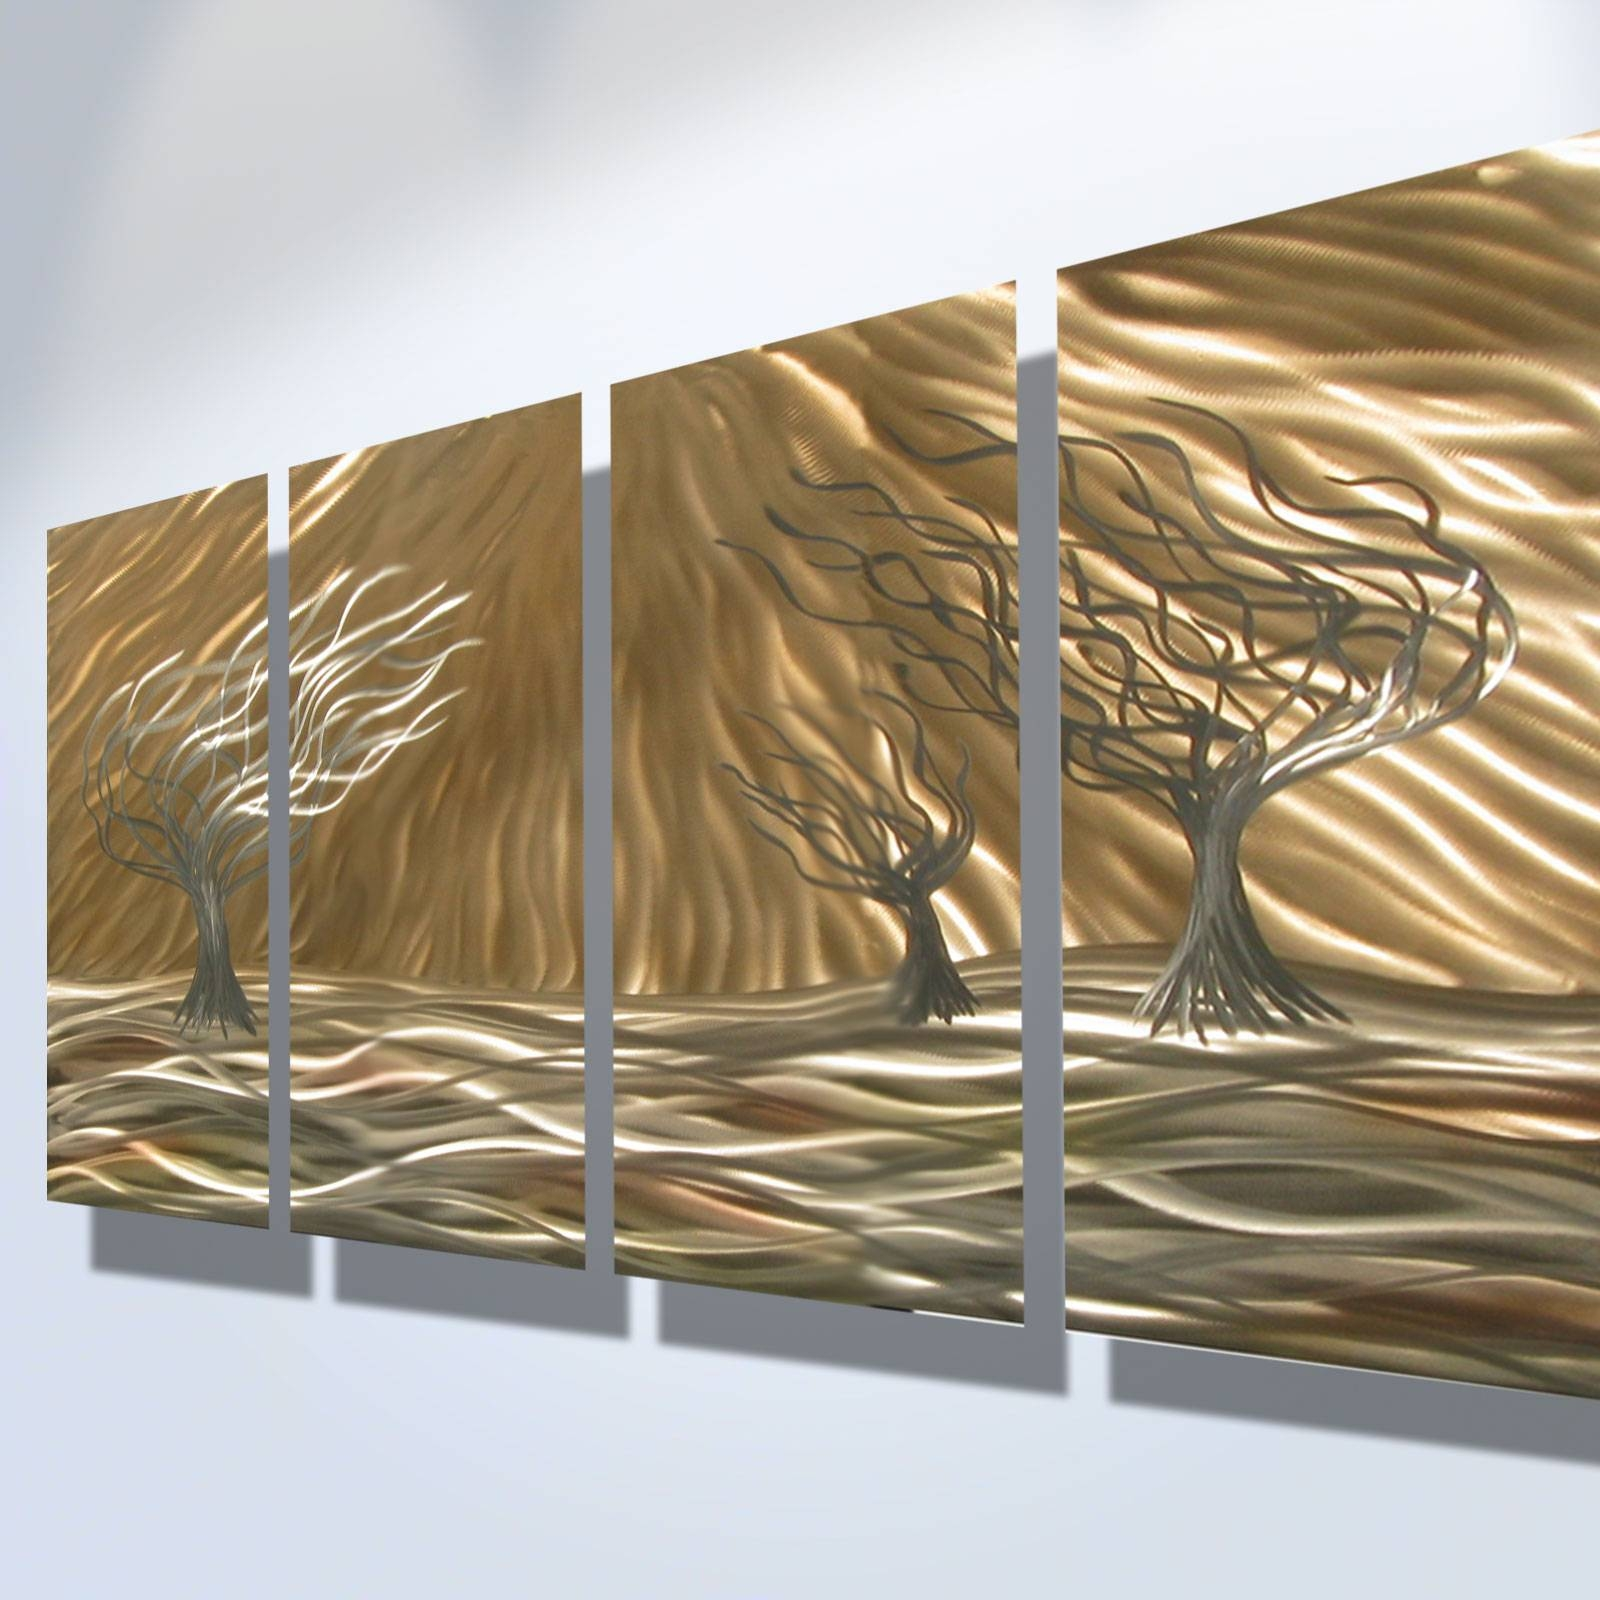 3 Trees 4 Panel – Abstract Metal Wall Art Contemporary Modern For Most Up To Date Abstract Metal Wall Art Sculptures (View 1 of 20)